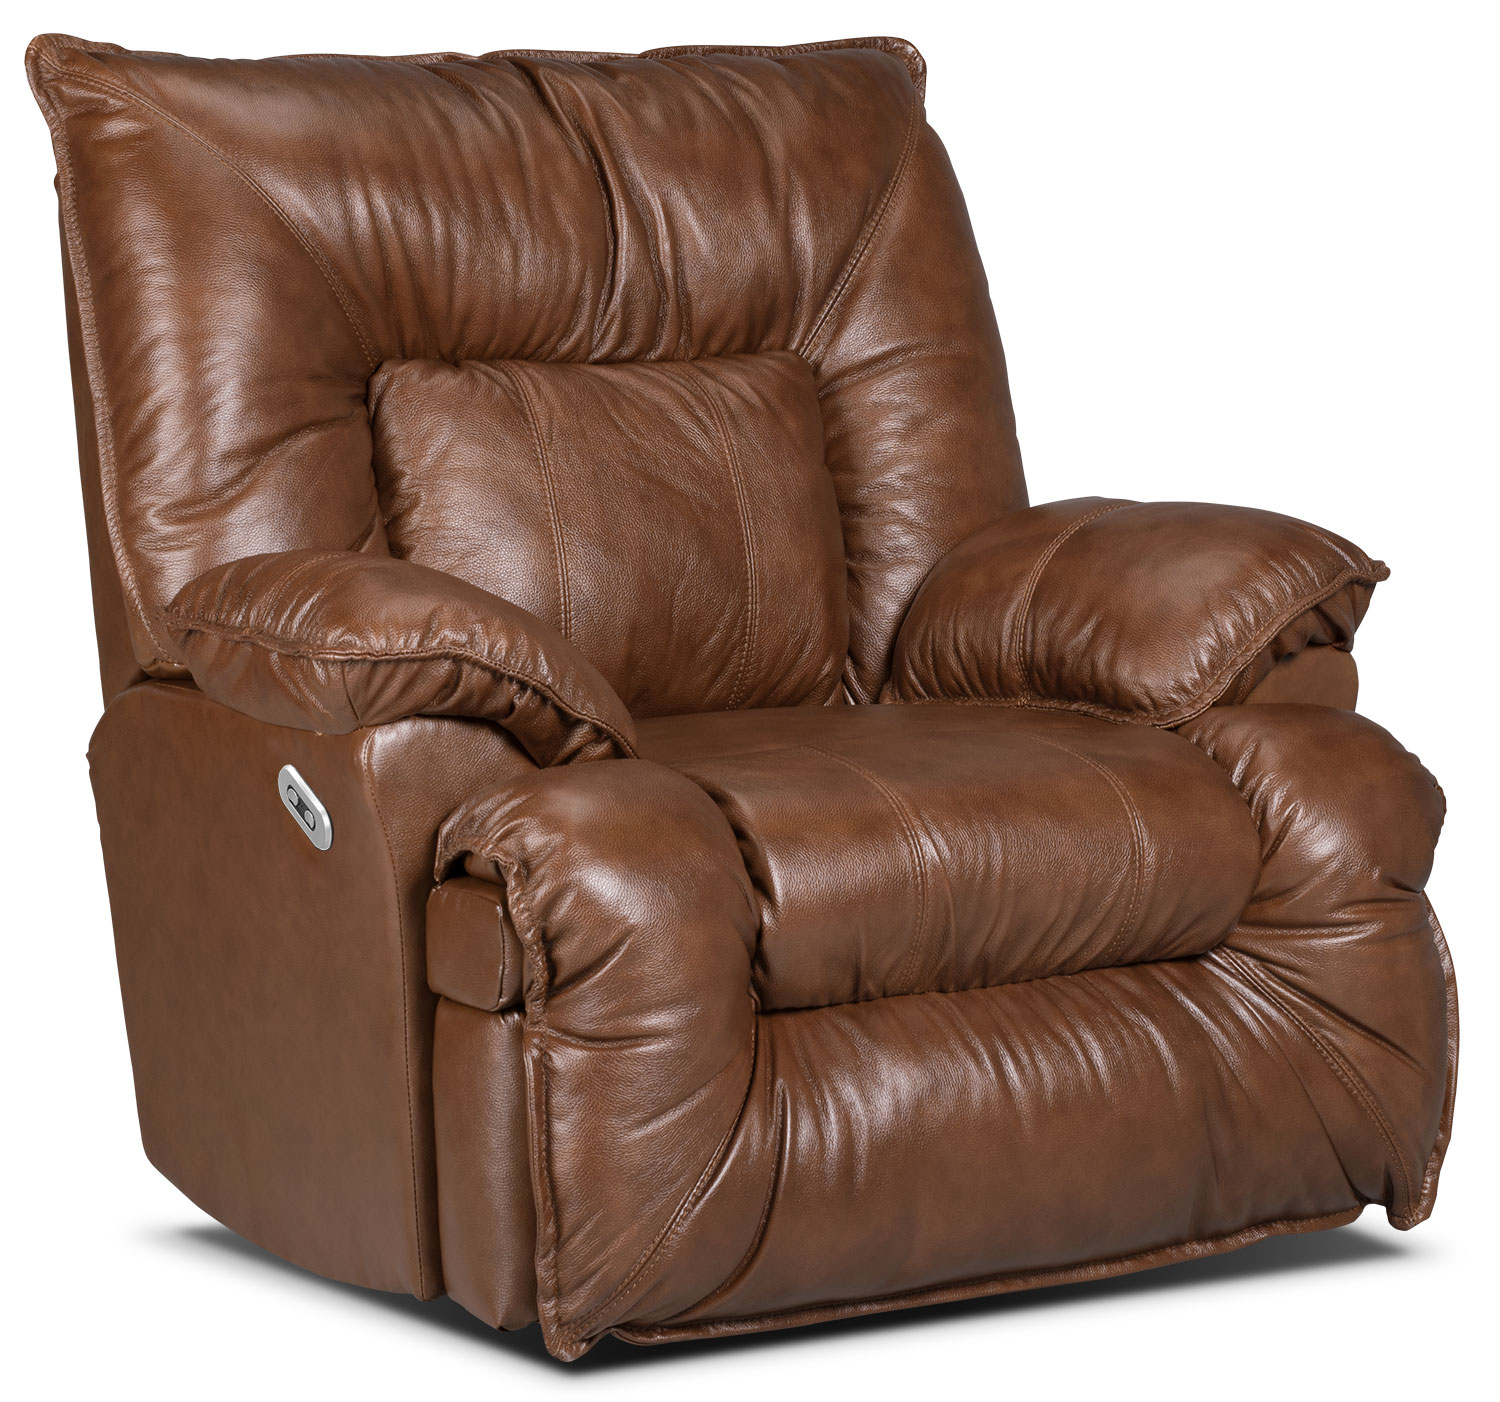 Designed2B Recliner 7726 Genuine Leather Power Lay-Flat Recline Chair - Saddle